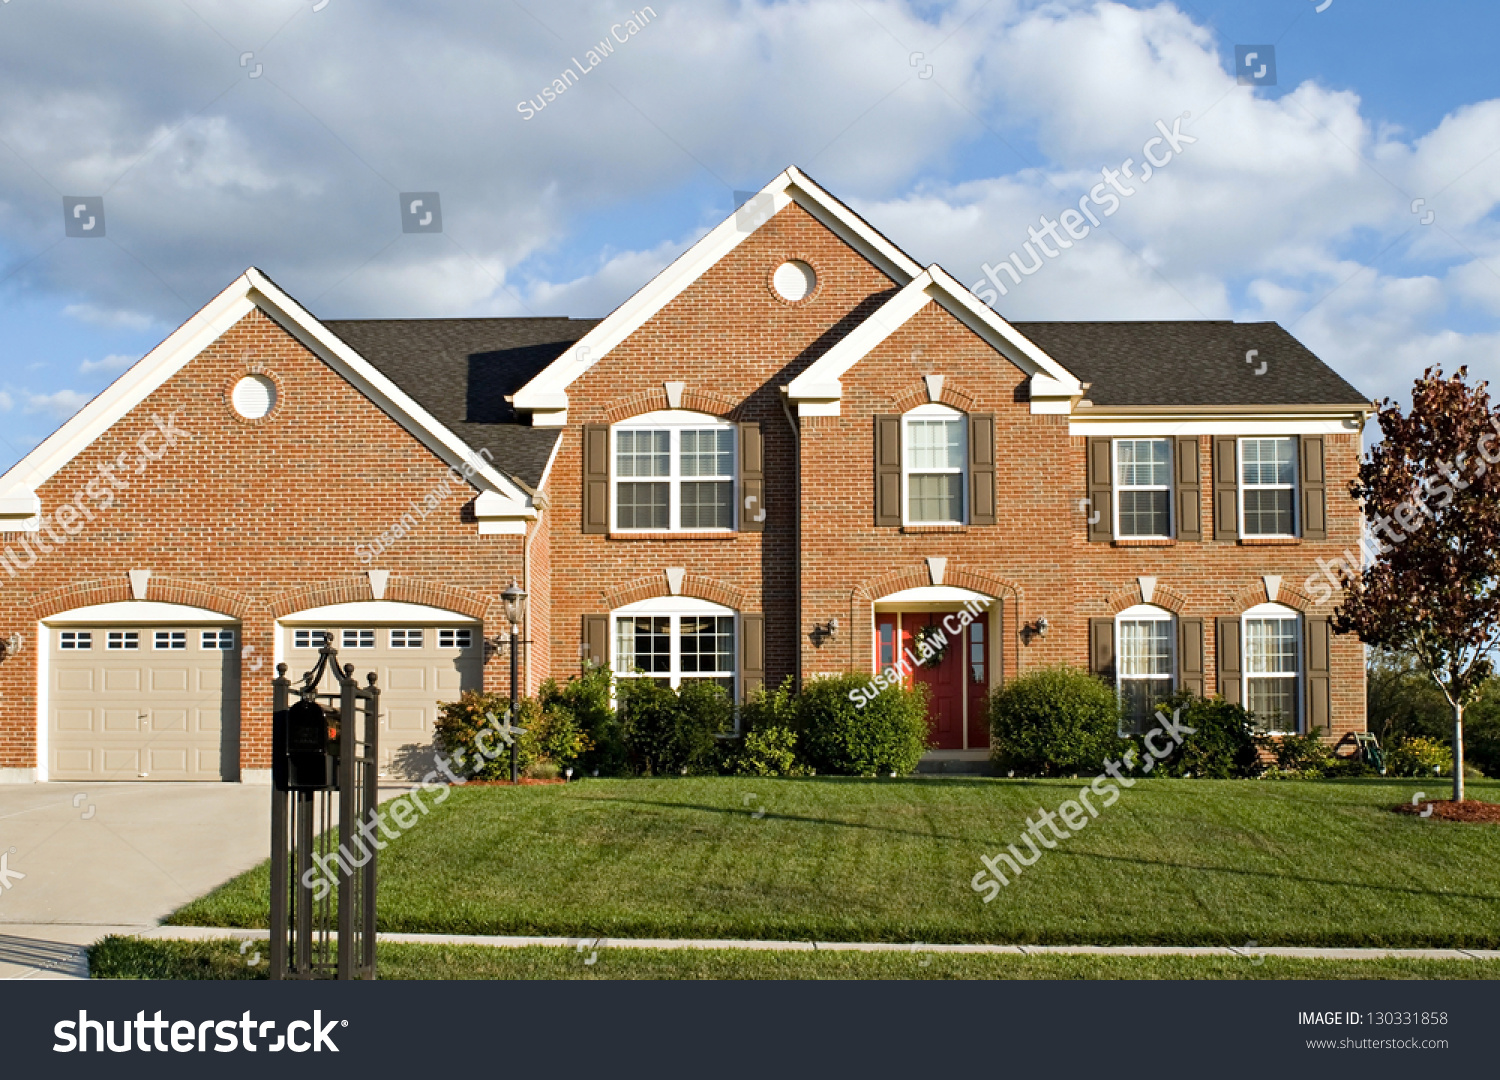 Two Story Brick House Stock Photo 130331858 Shutterstock